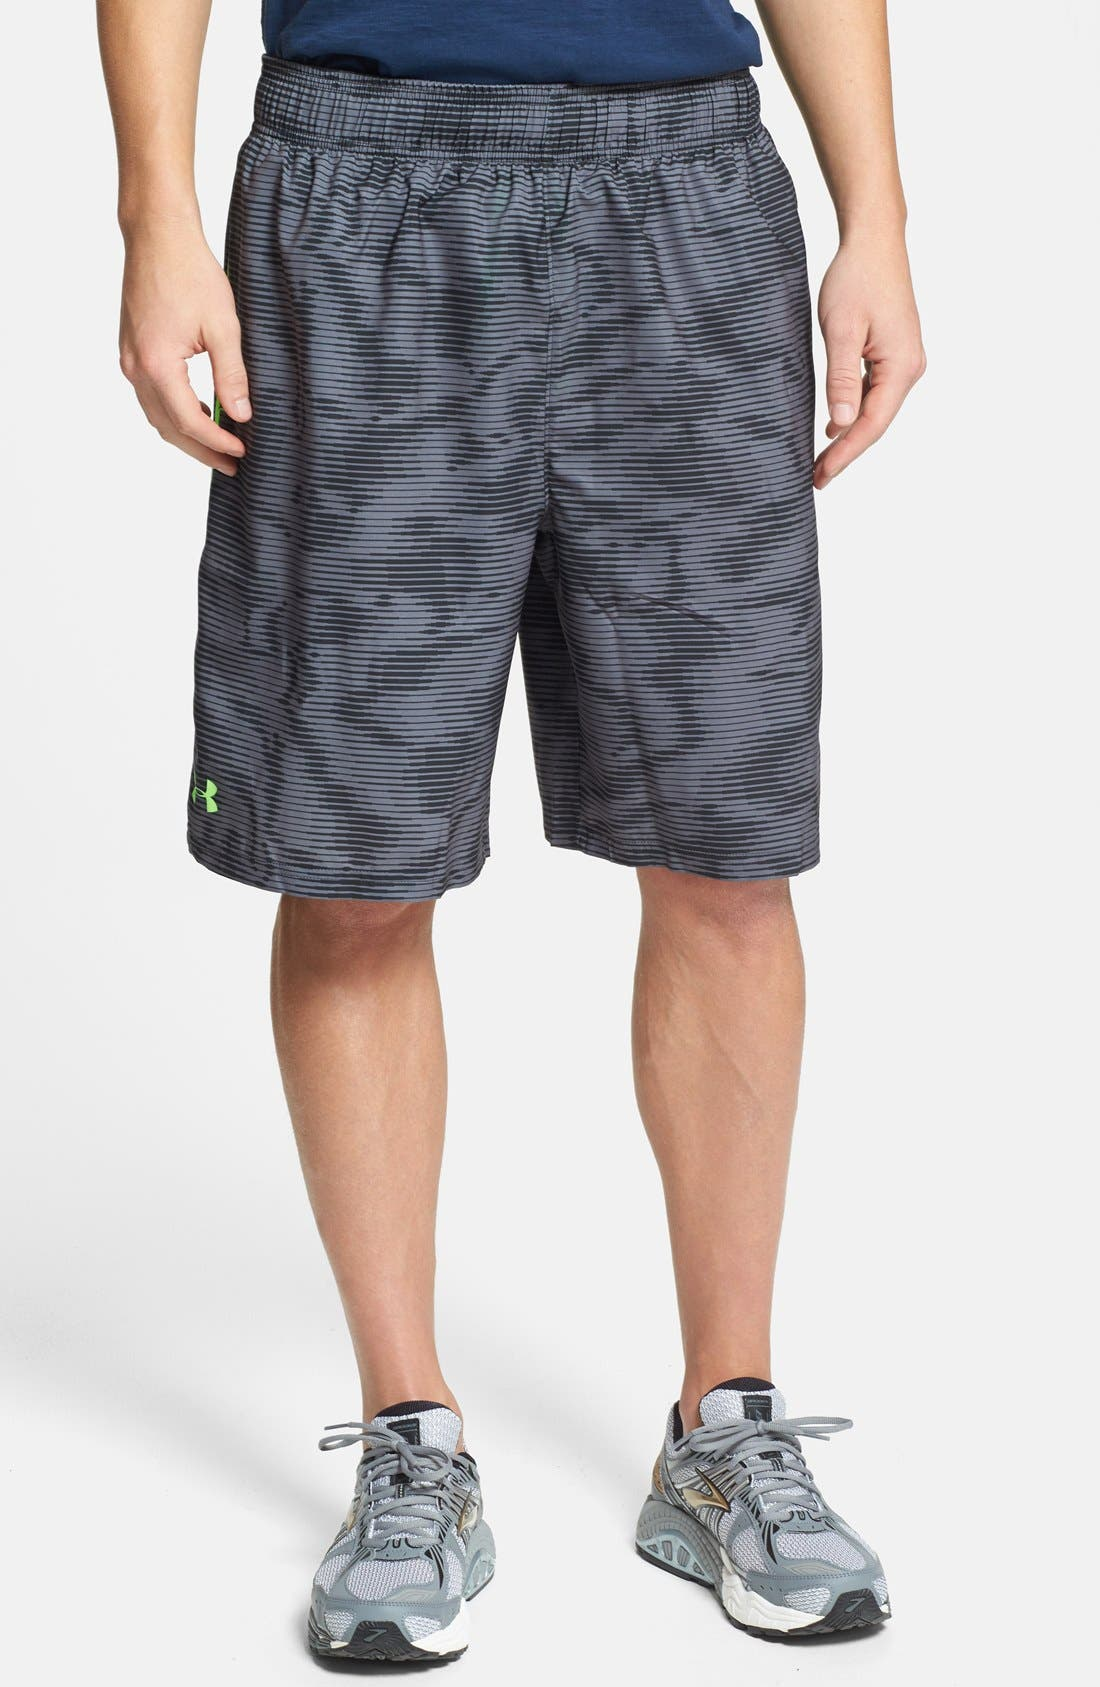 Alternate Image 1 Selected - Under Armour 'Mirage' HeatGear® Woven Shorts